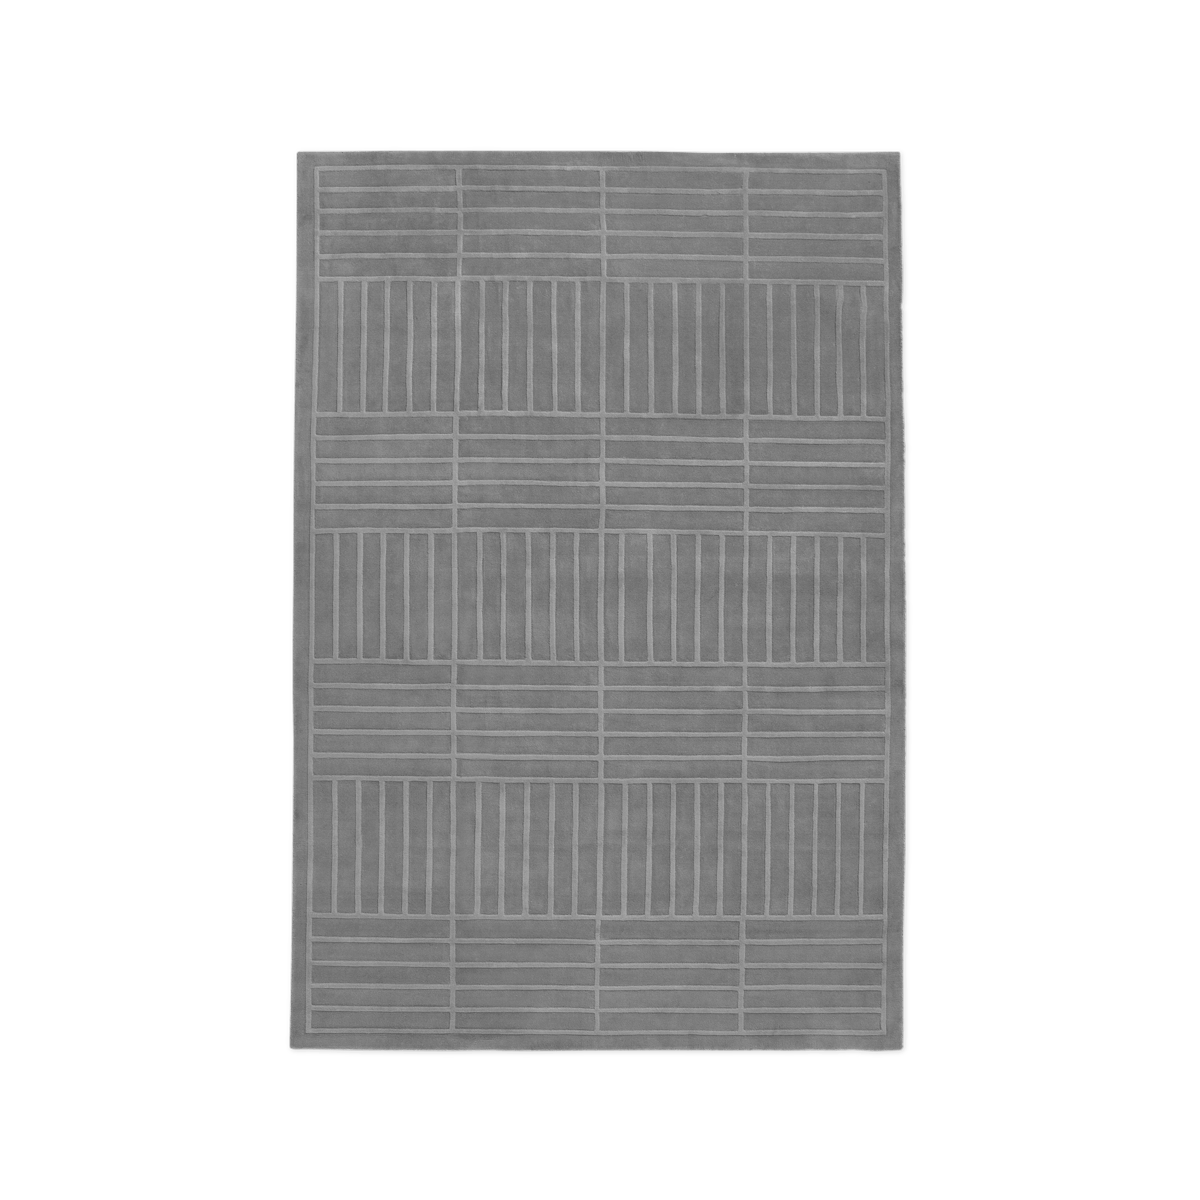 Product image of the plush rug Lux 1 in Gray. It has a cut-out graphic pattern spread across the rug.